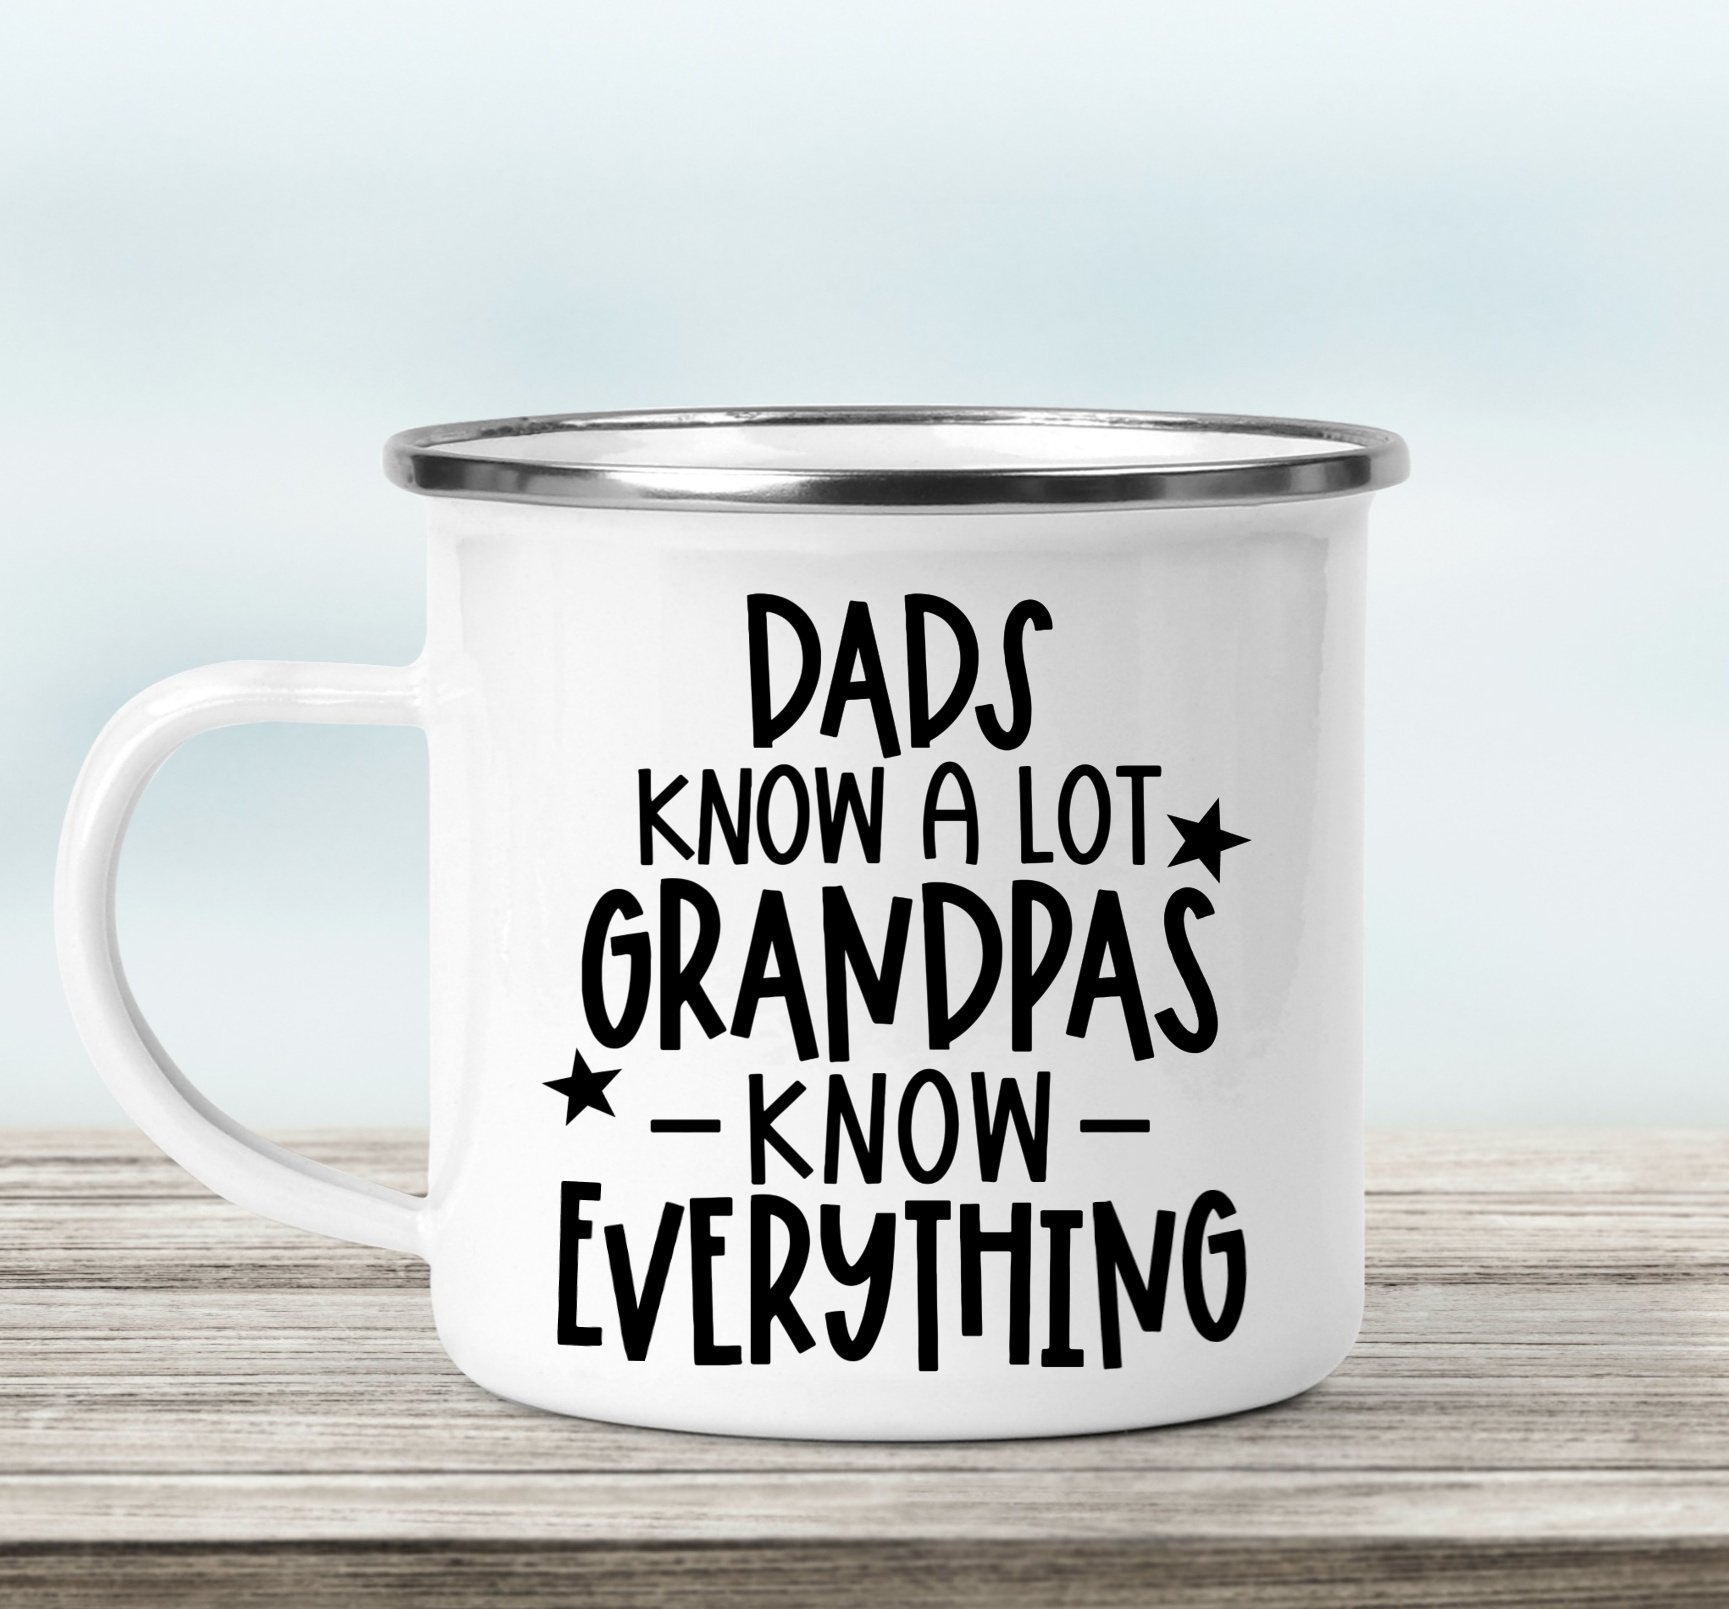 https://www.happygoluckyblog.com/wp-content/uploads/2020/06/Grand-in-Grandpa-Mug1.jpg